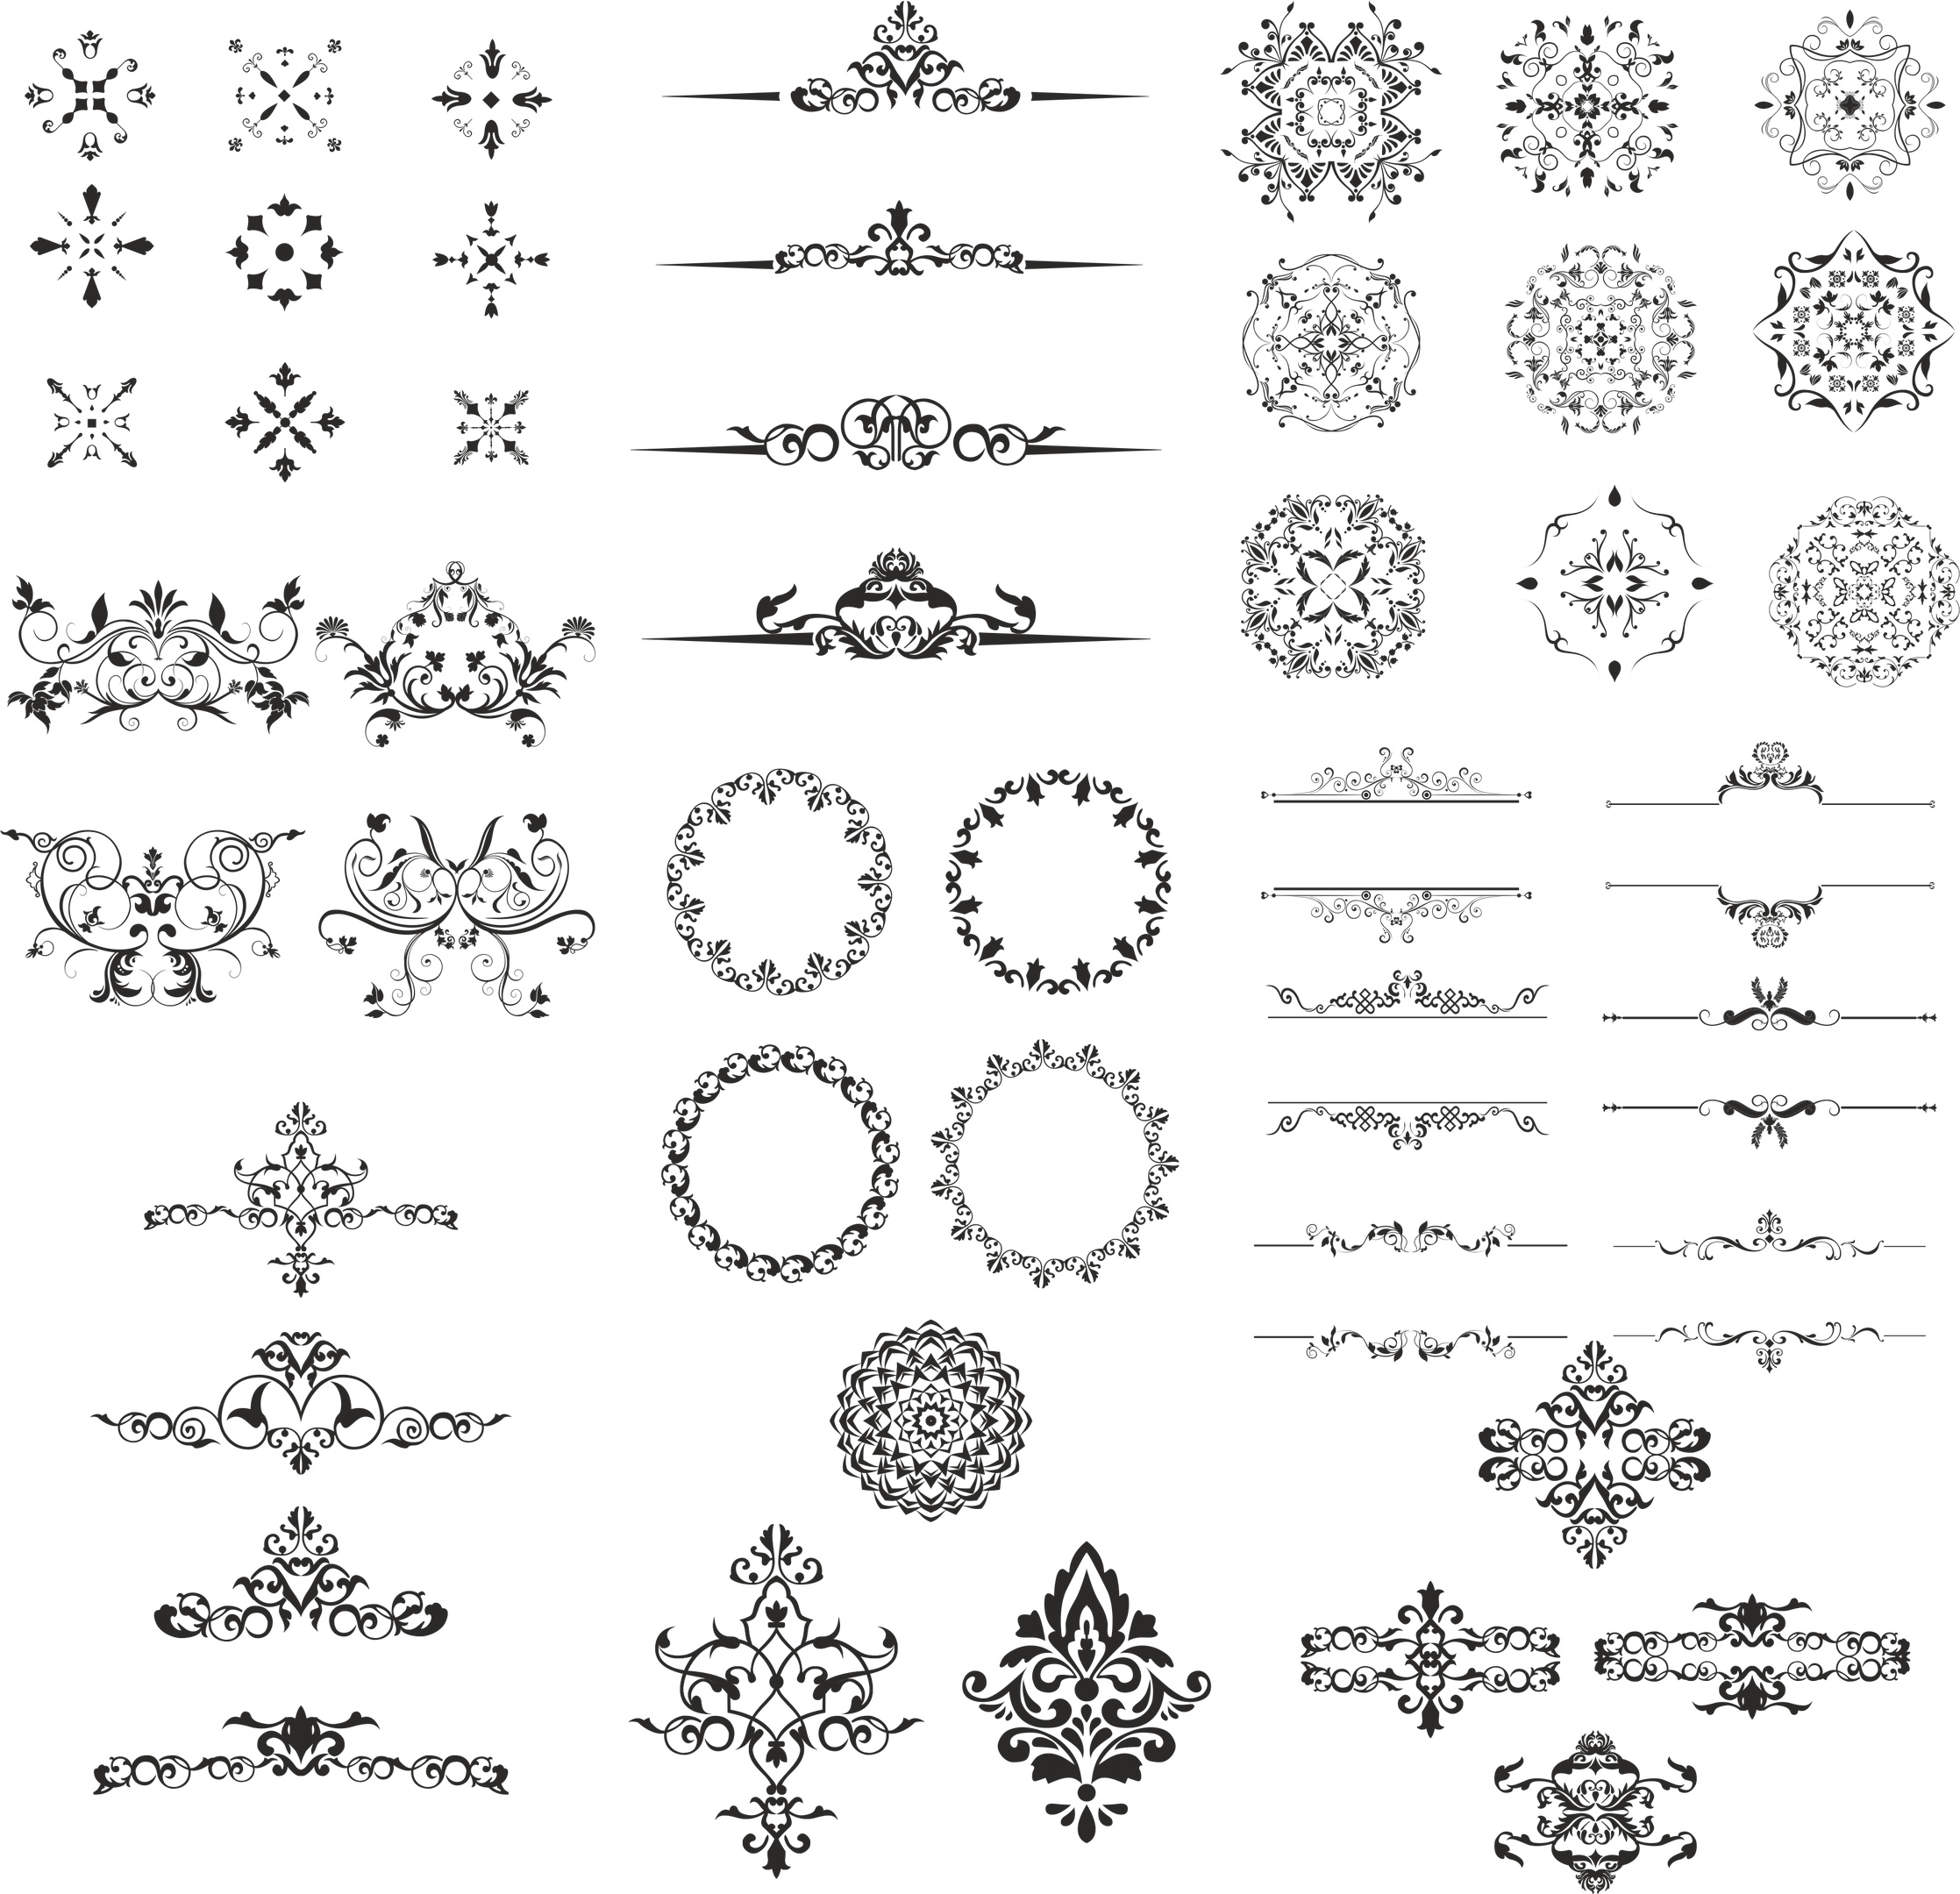 Ornament Design Kit Free CDR Vectors Art